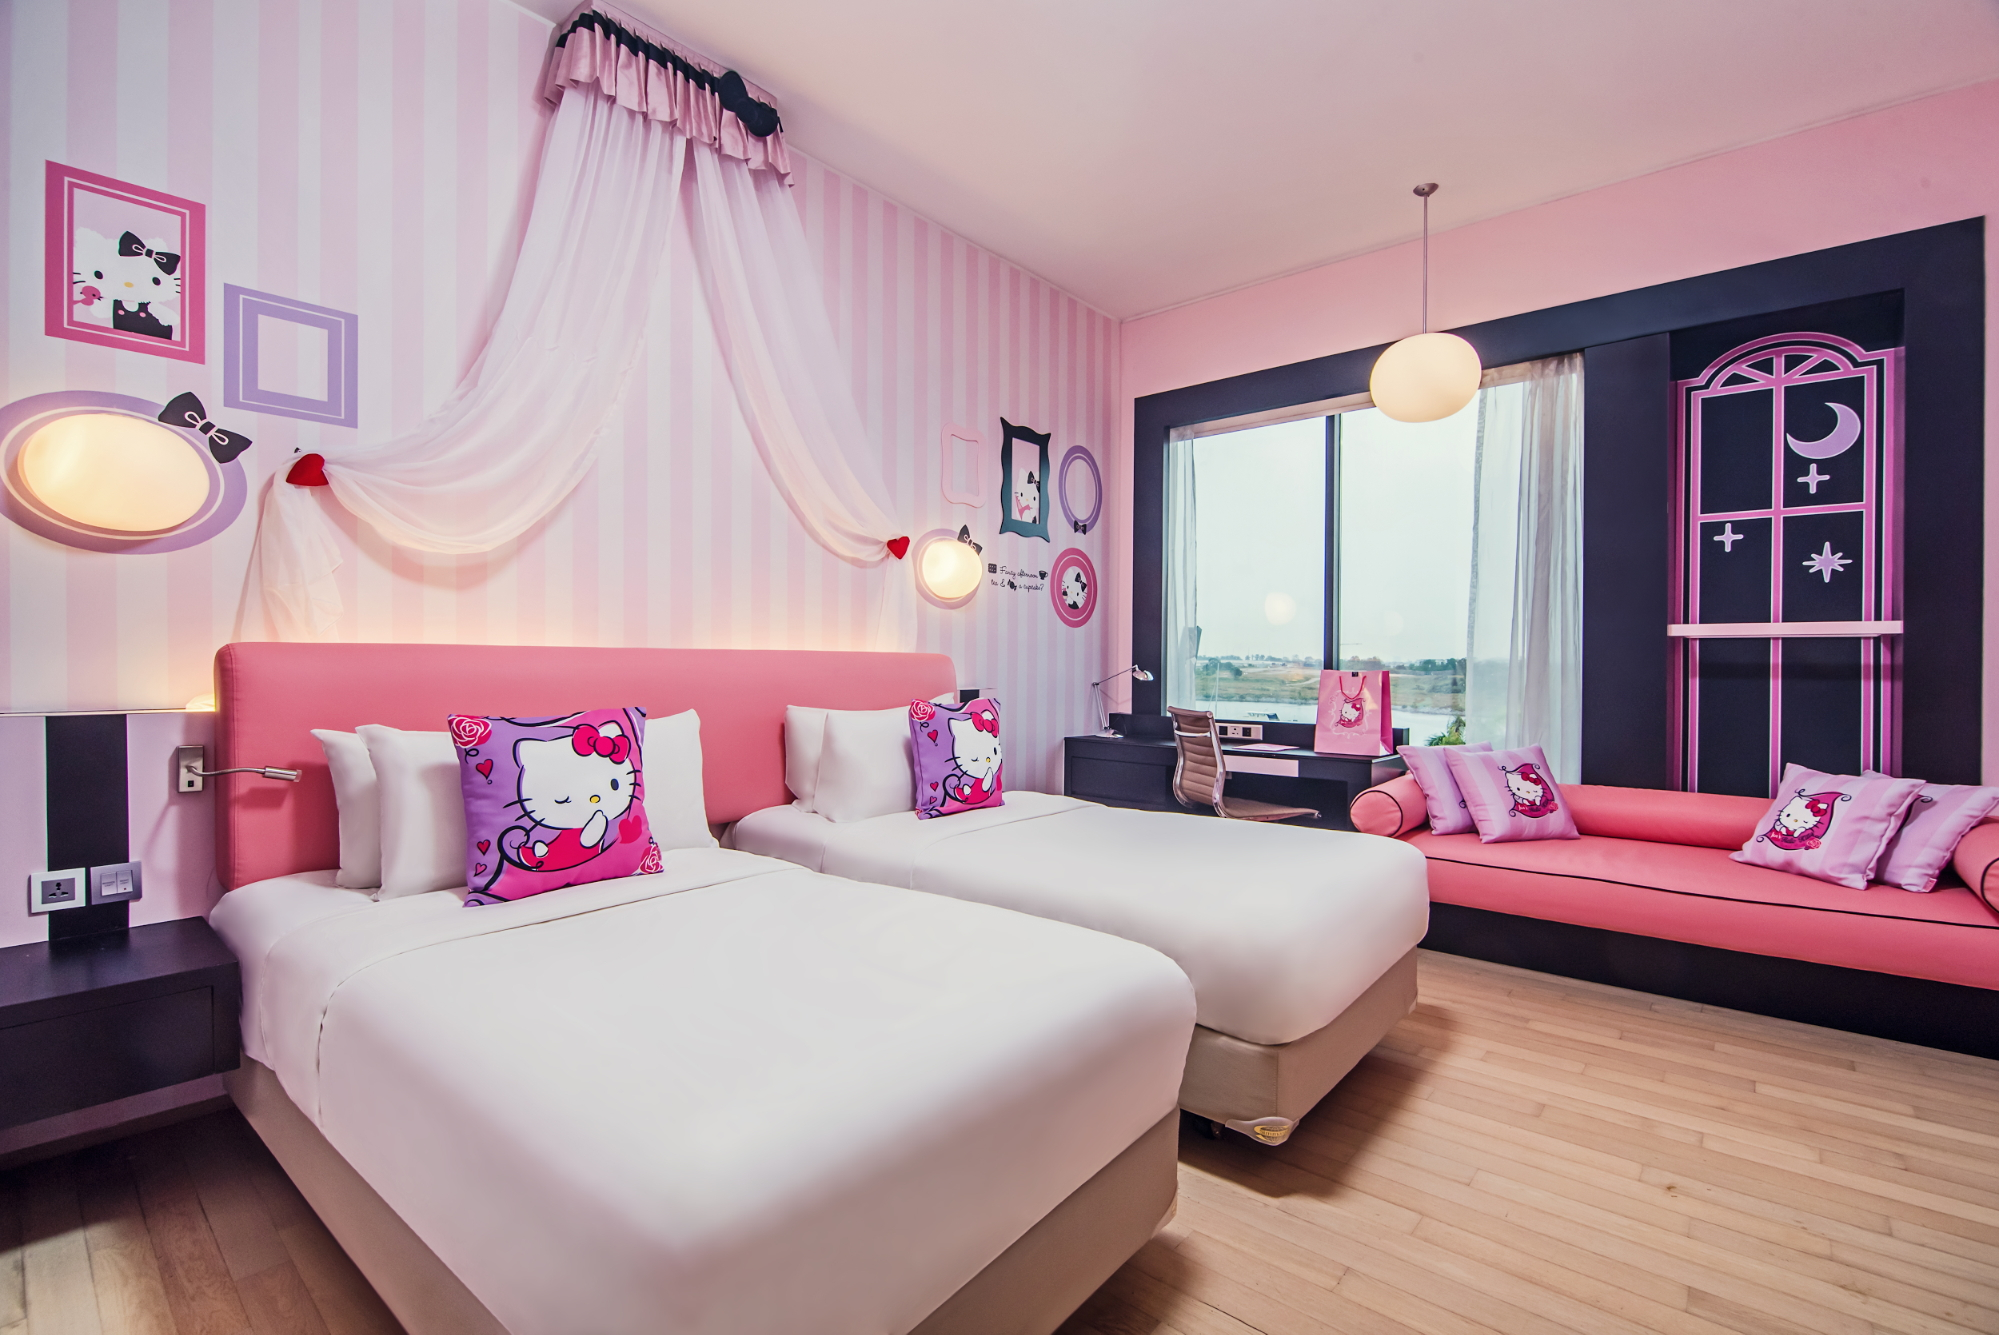 11 JB Hotels Near The Causeway From $41/Night For 2D1N Shopping Marathons